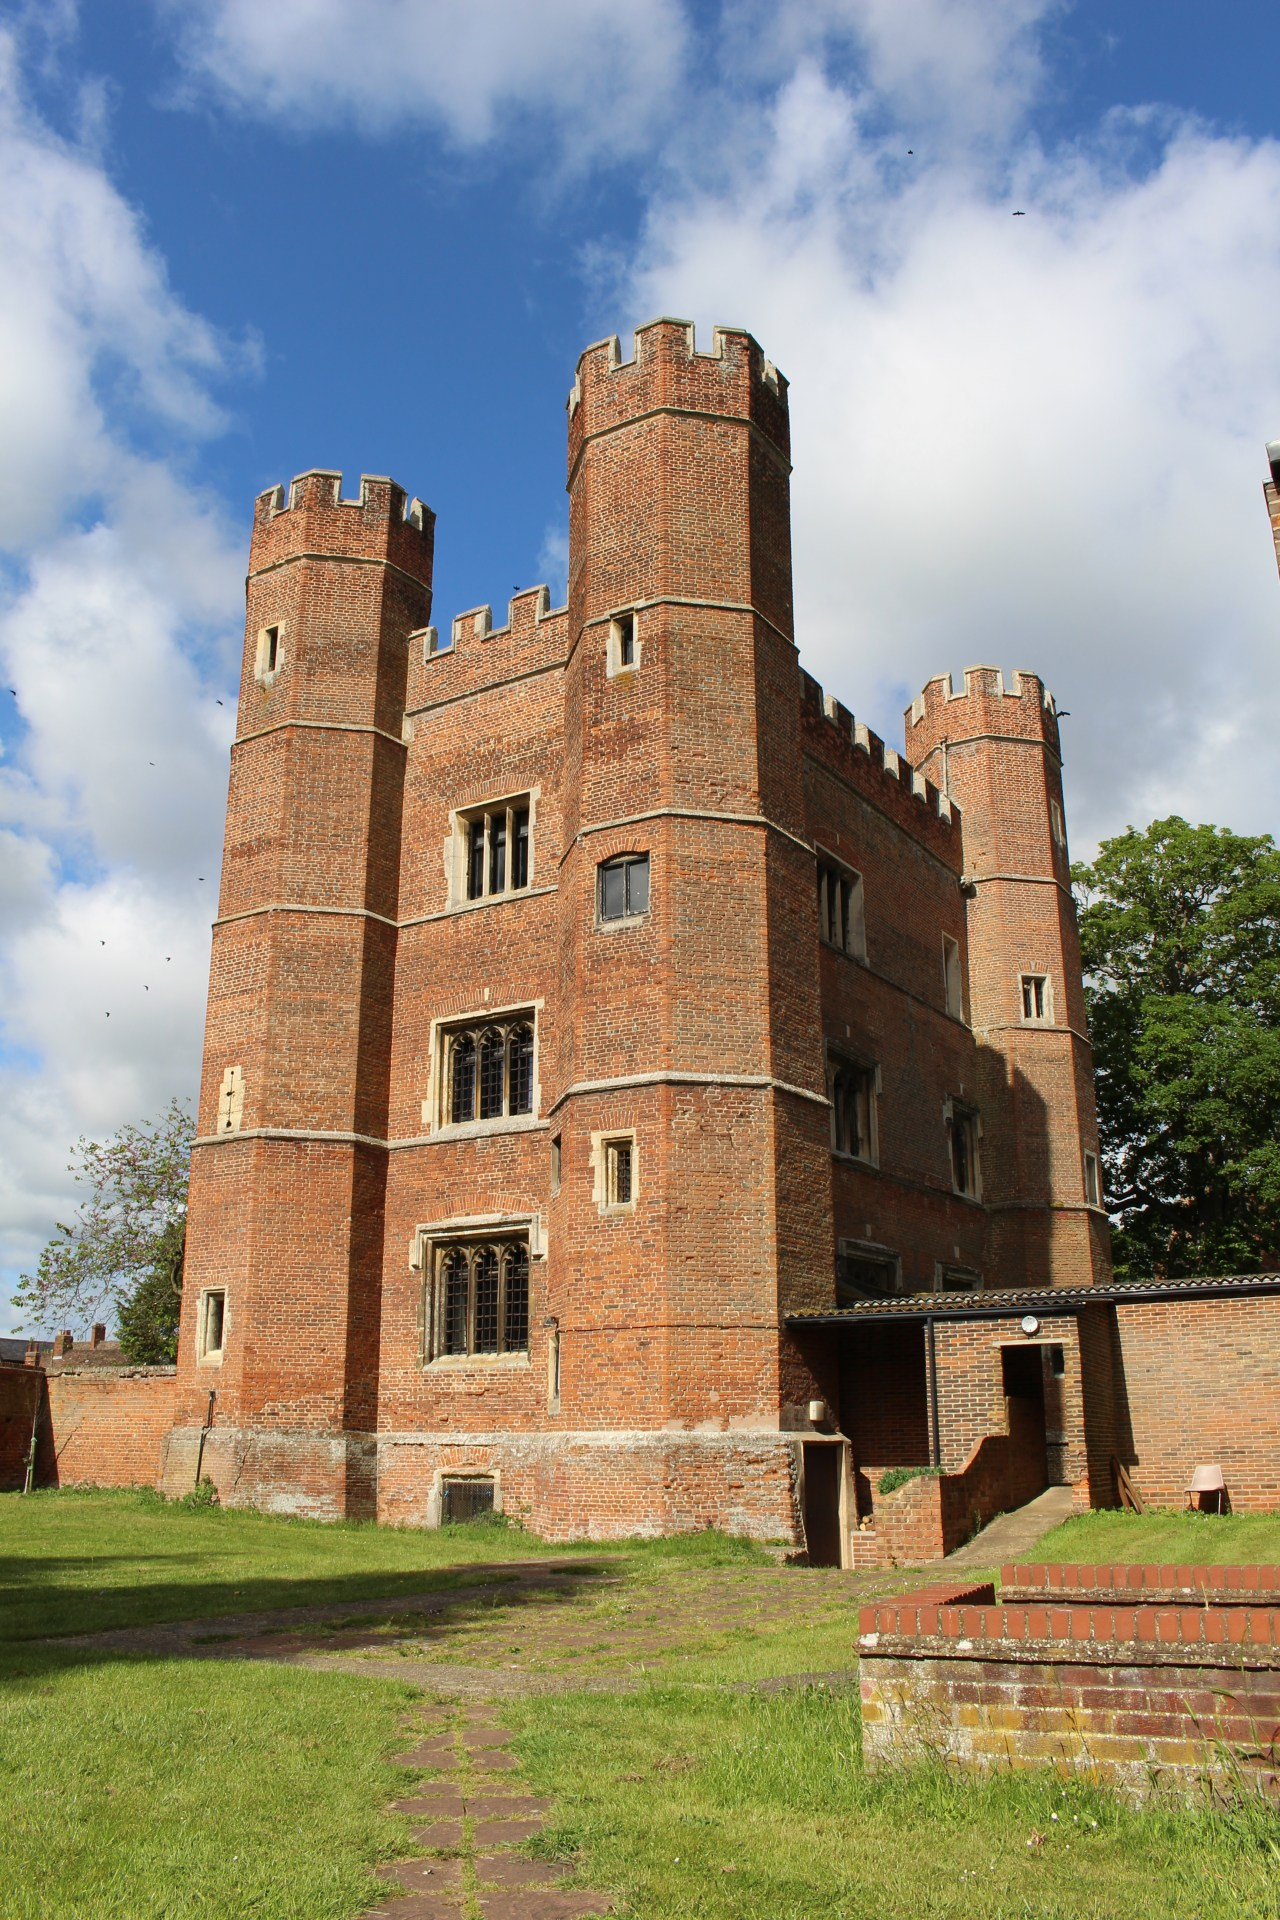 The Tower House At Buckden Palace